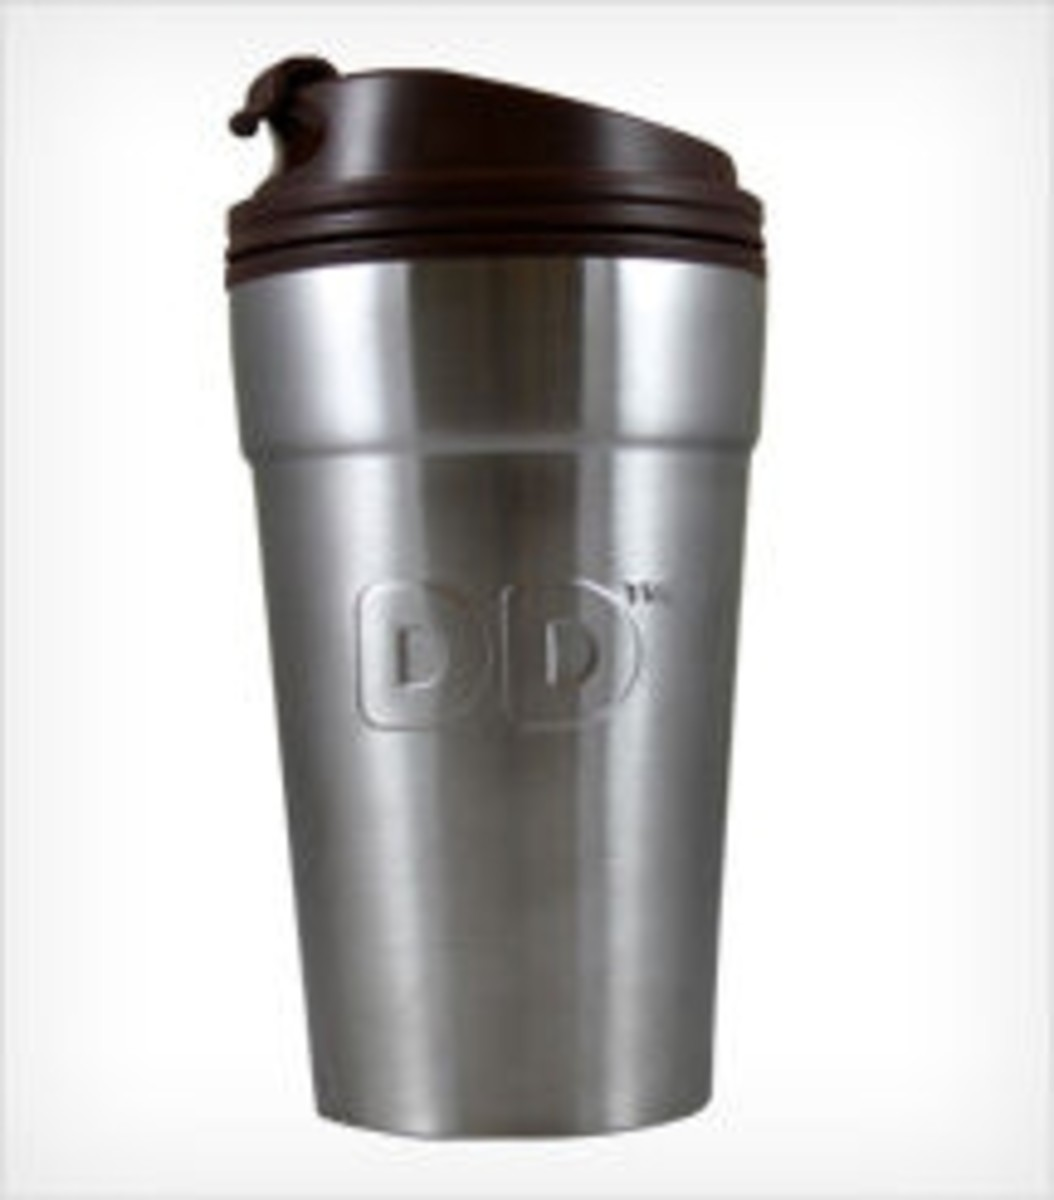 Dunkin' Donuts stainless steel mug